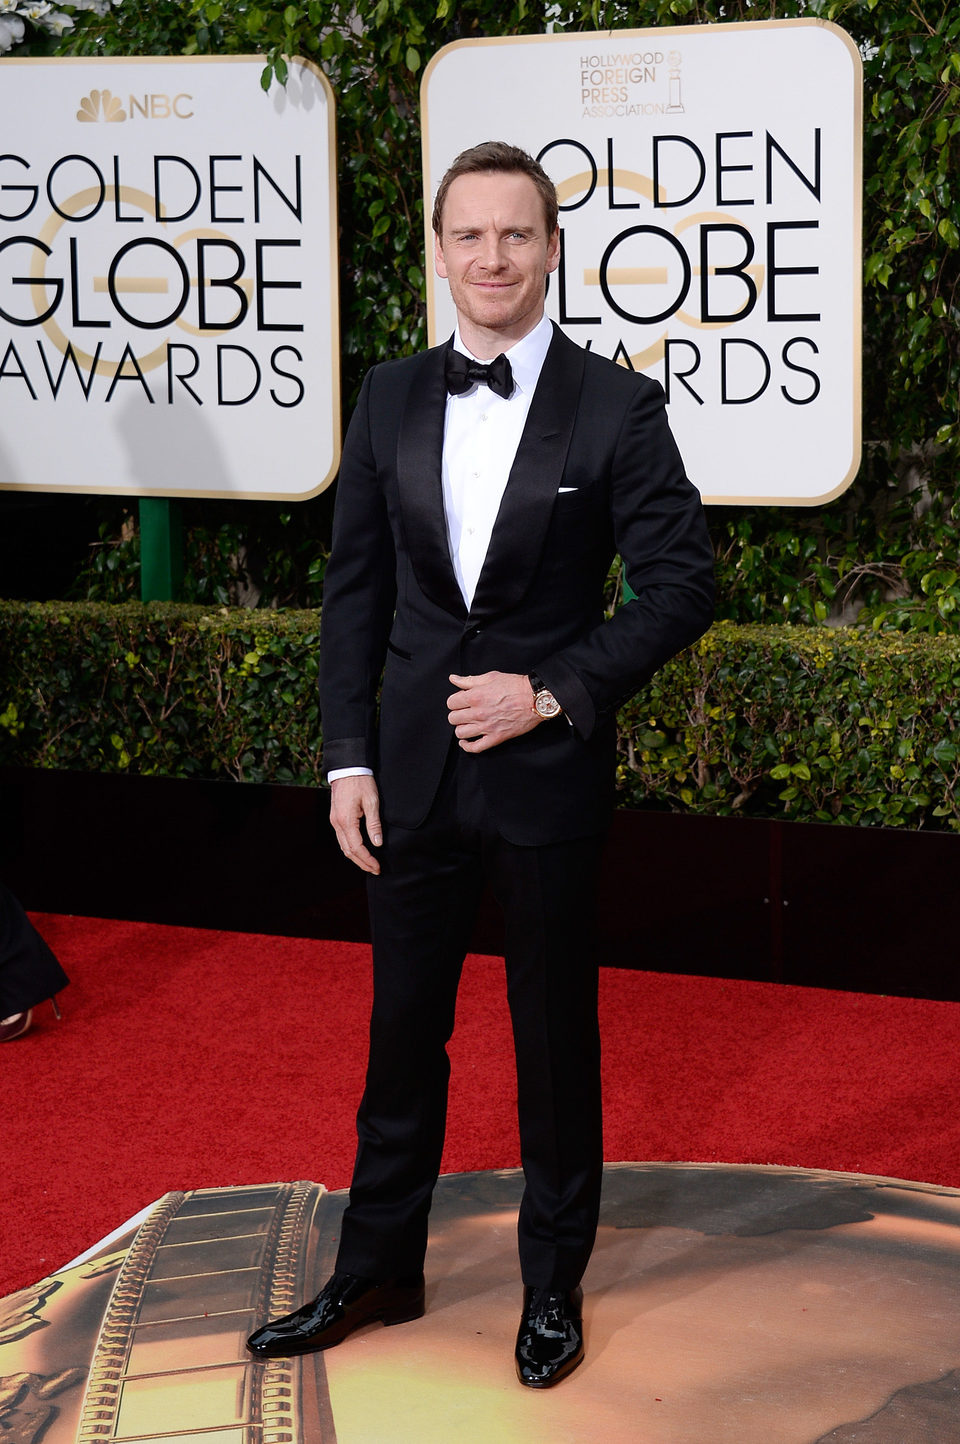 Michael Fassbender at the 2016 Golden Globes red carpet